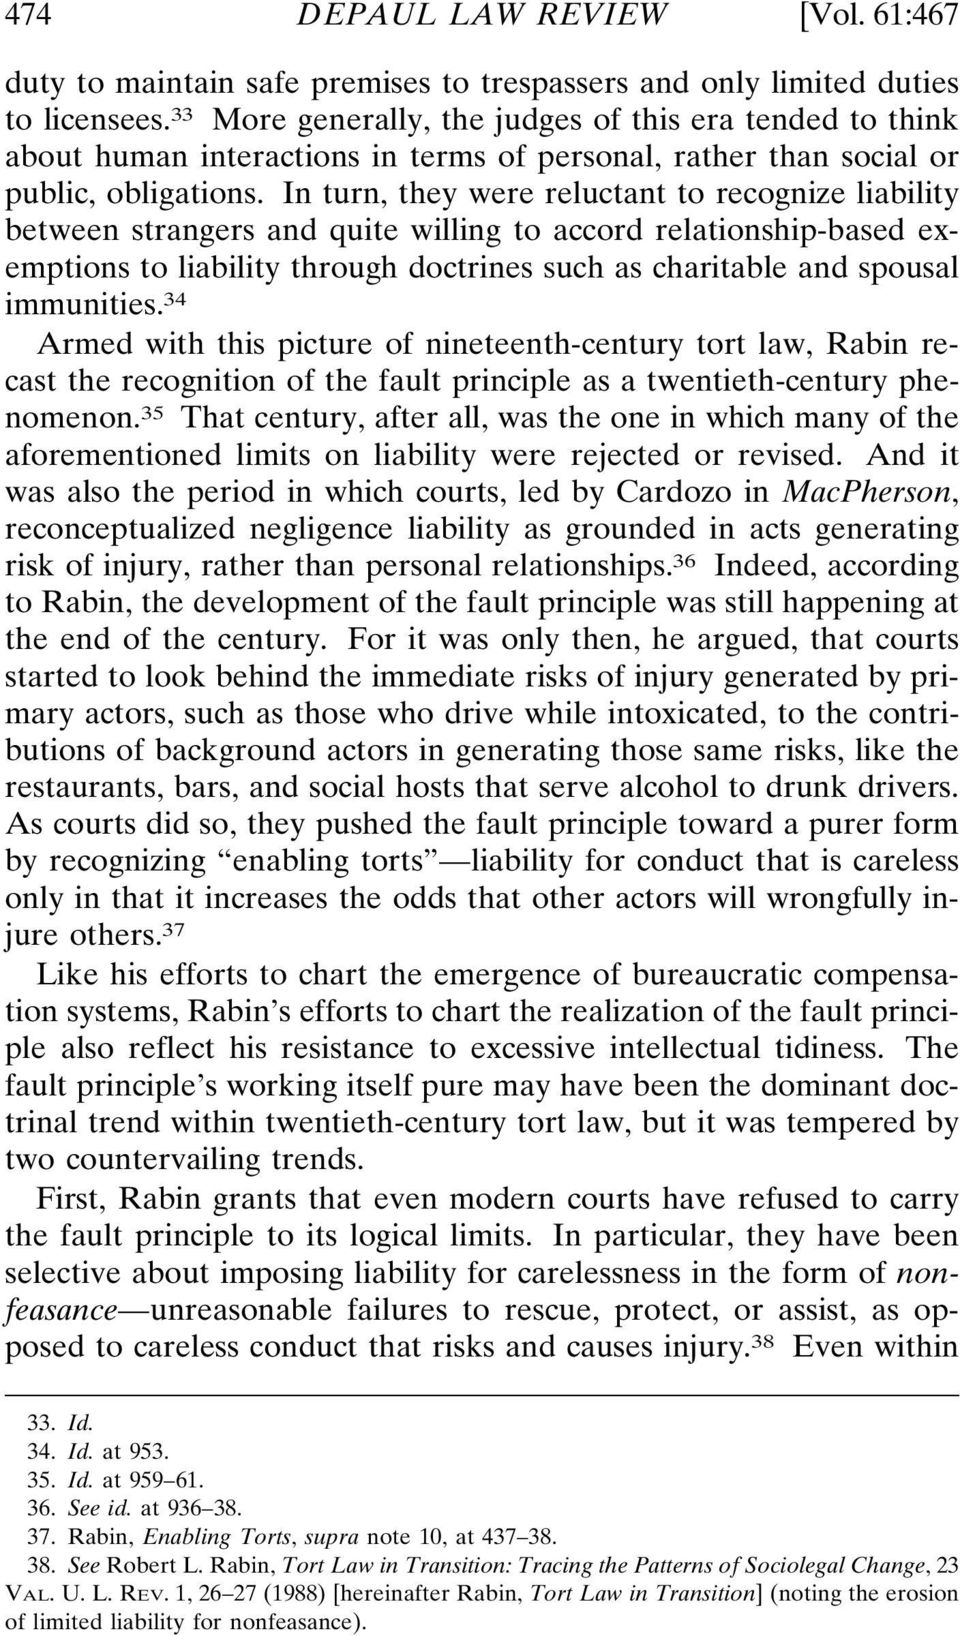 In turn, they were reluctant to recognize liability between strangers and quite willing to accord relationship-based exemptions to liability through doctrines such as charitable and spousal